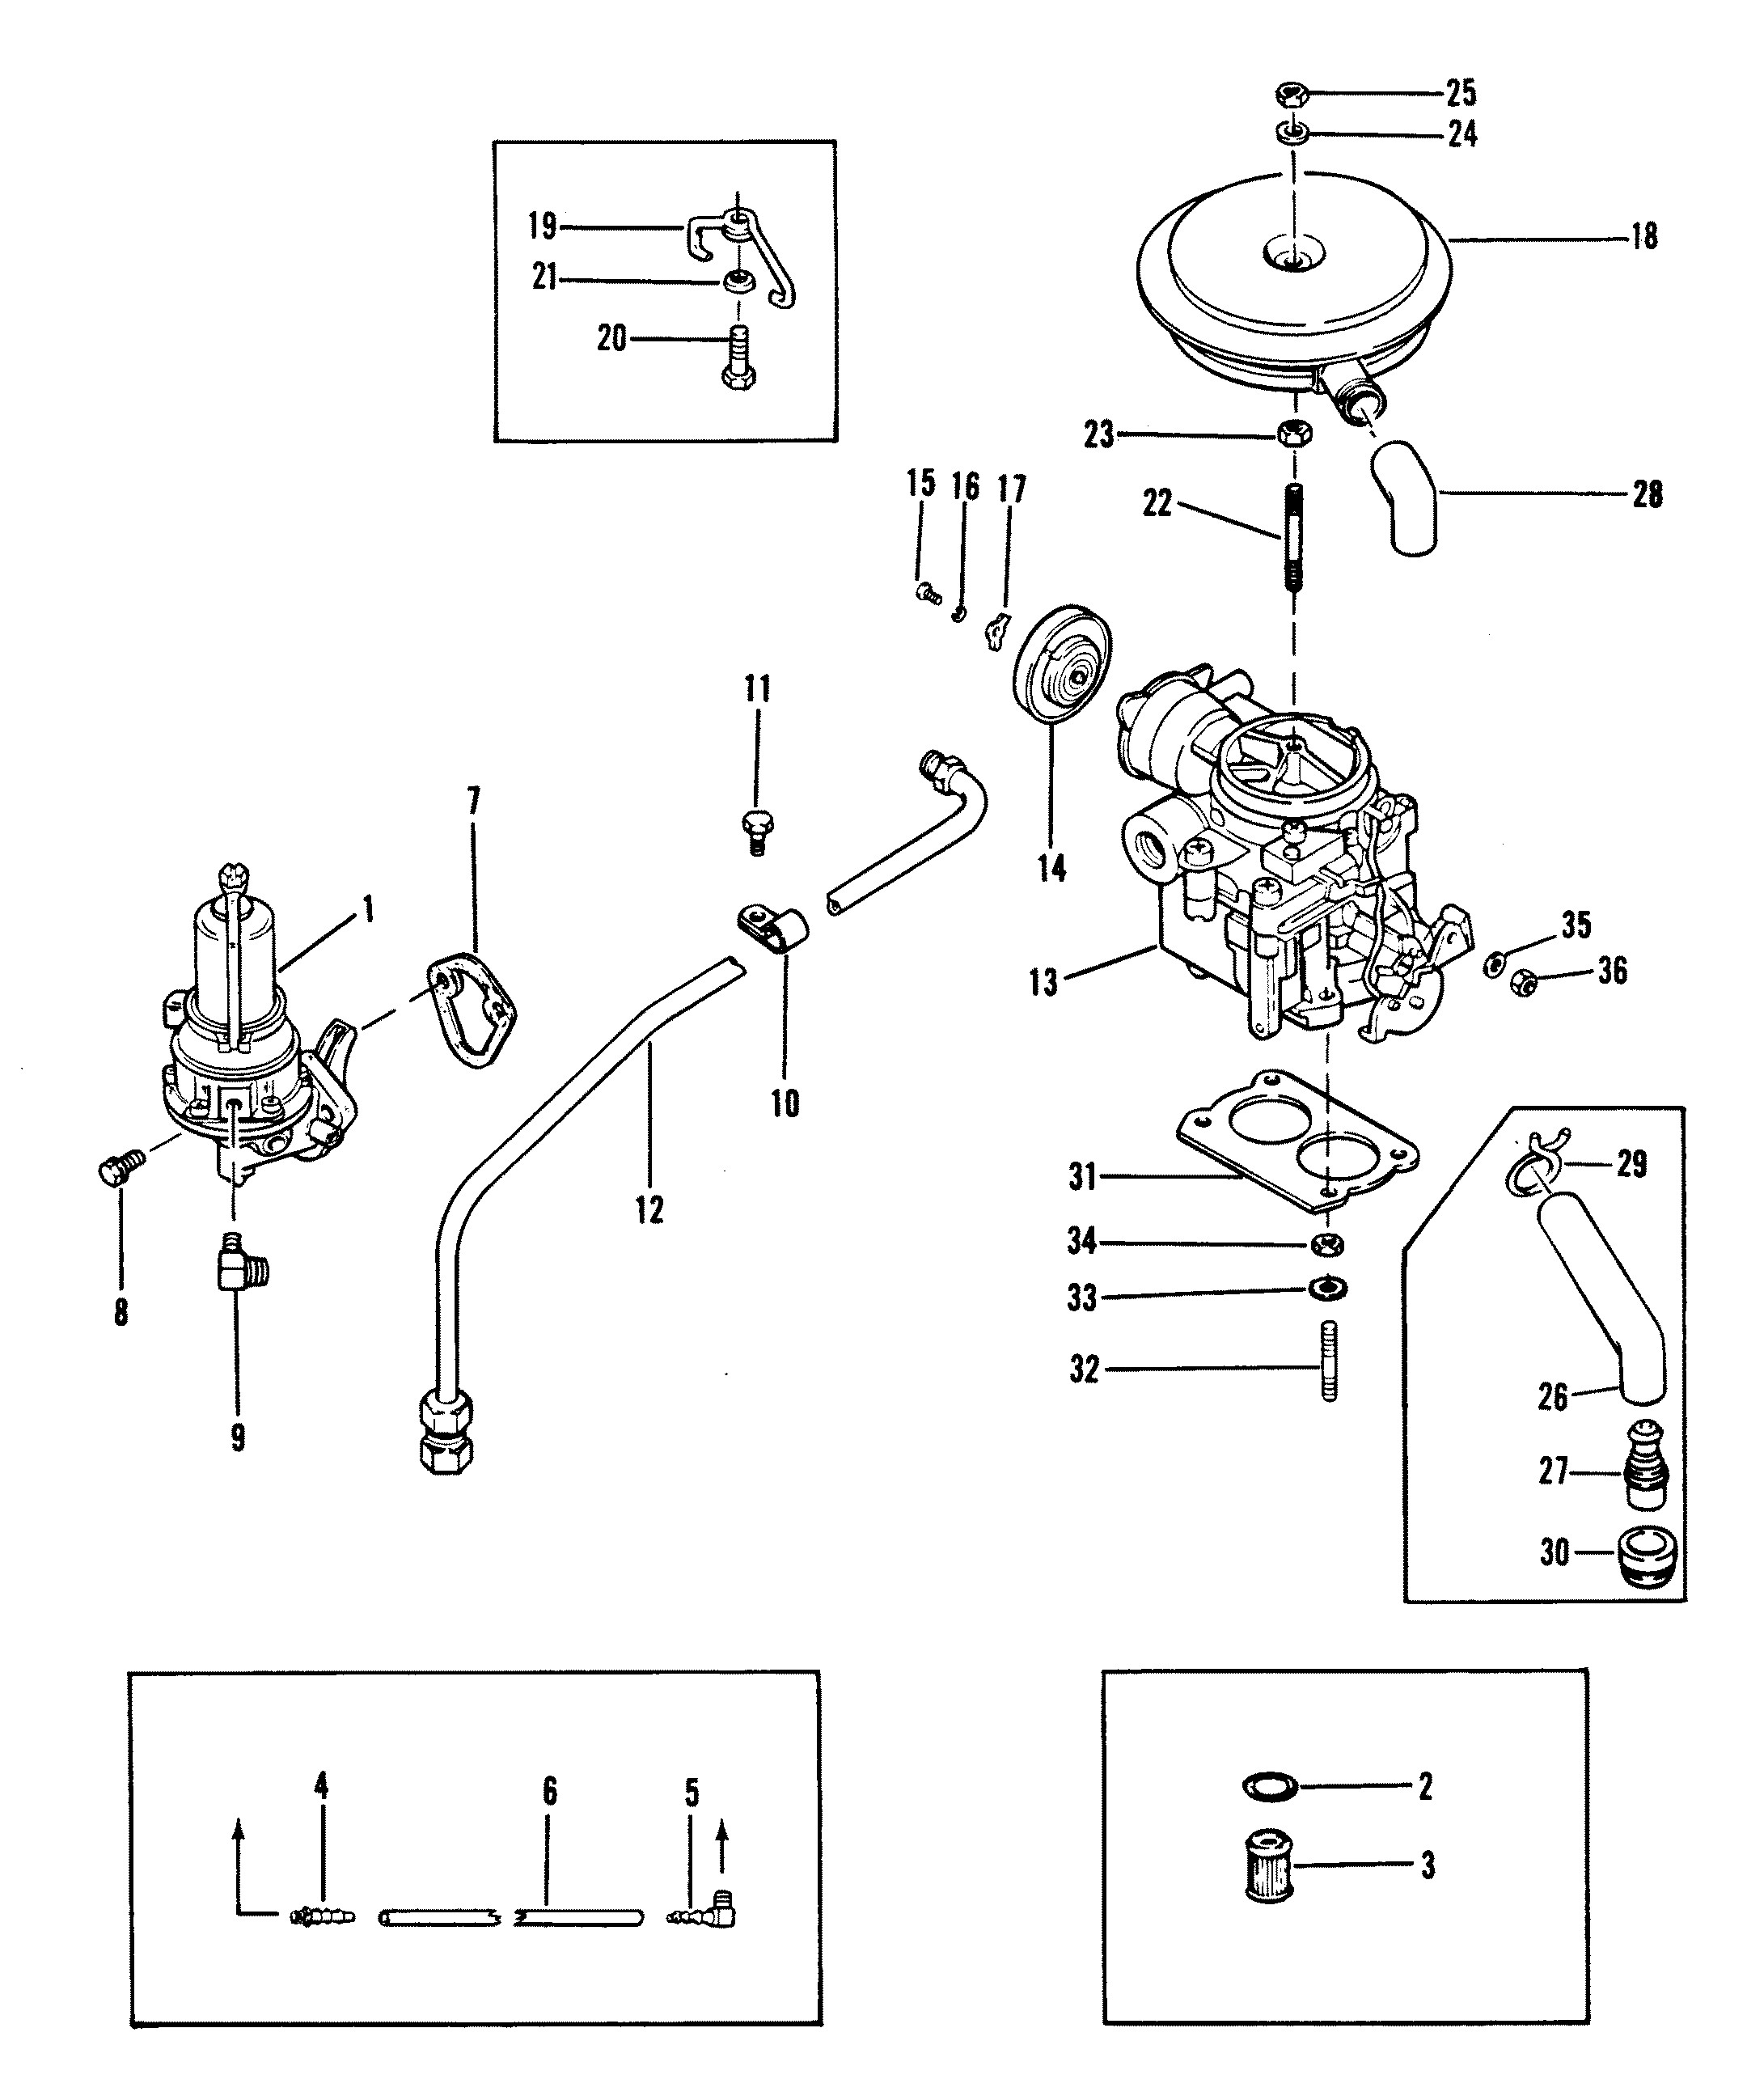 3 0 L Mercruiser Engine Diagram 350